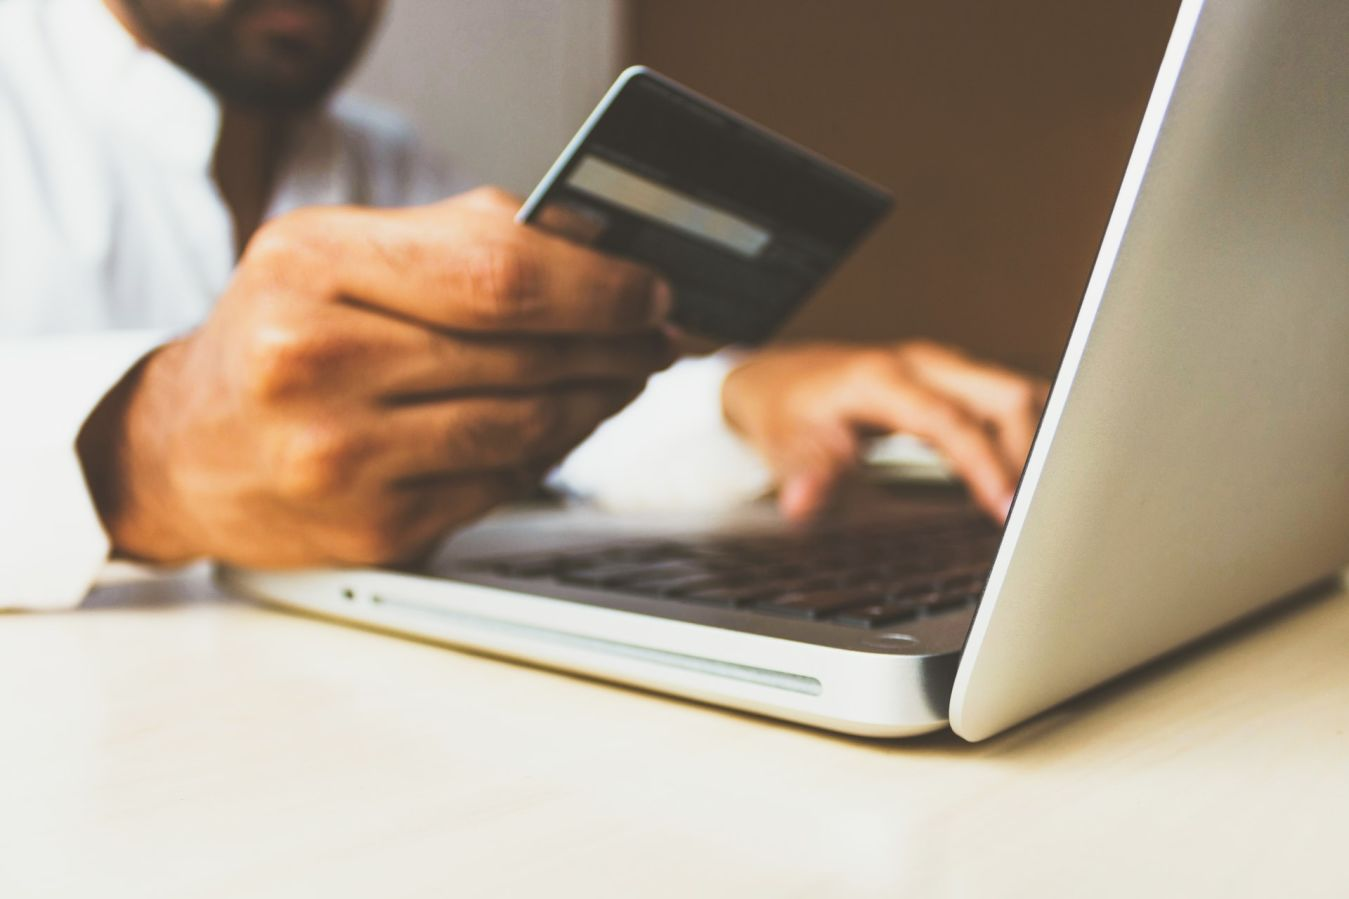 Accepting payments online doesn't have to be risky